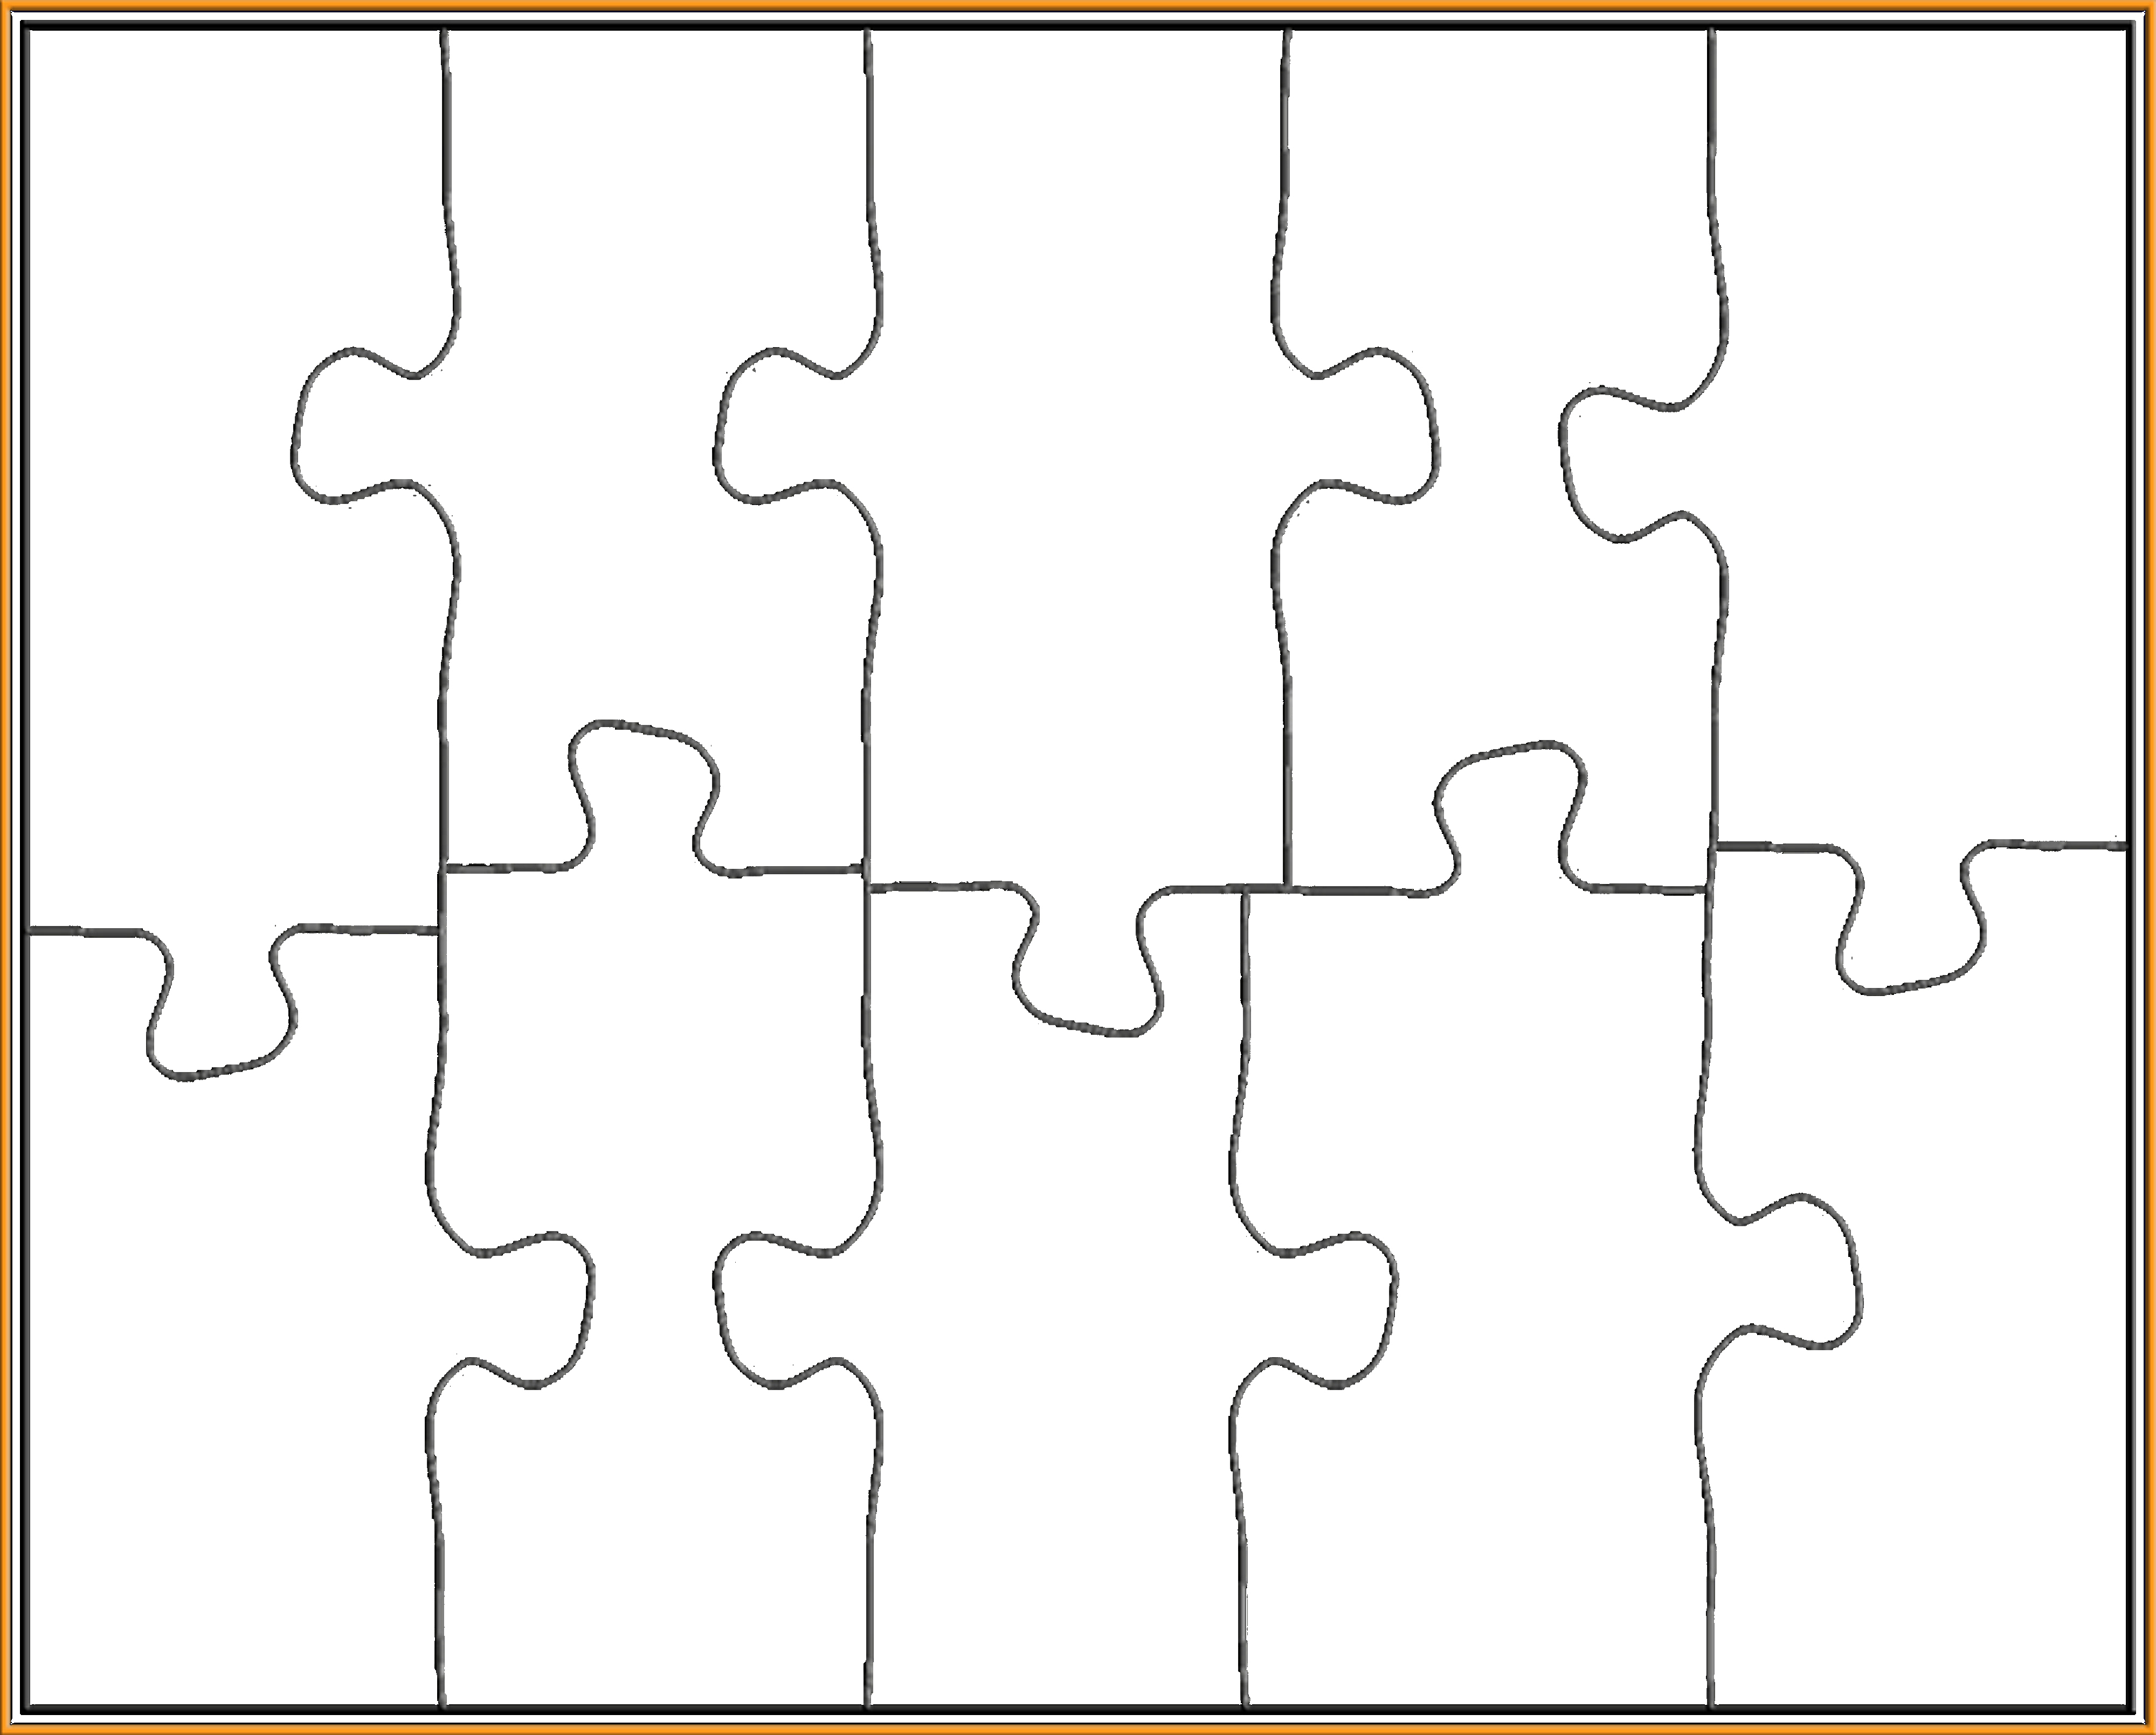 8 Piece Puzzle Template Inspirational 8 X 10 Inch 10 Piece Puzzle